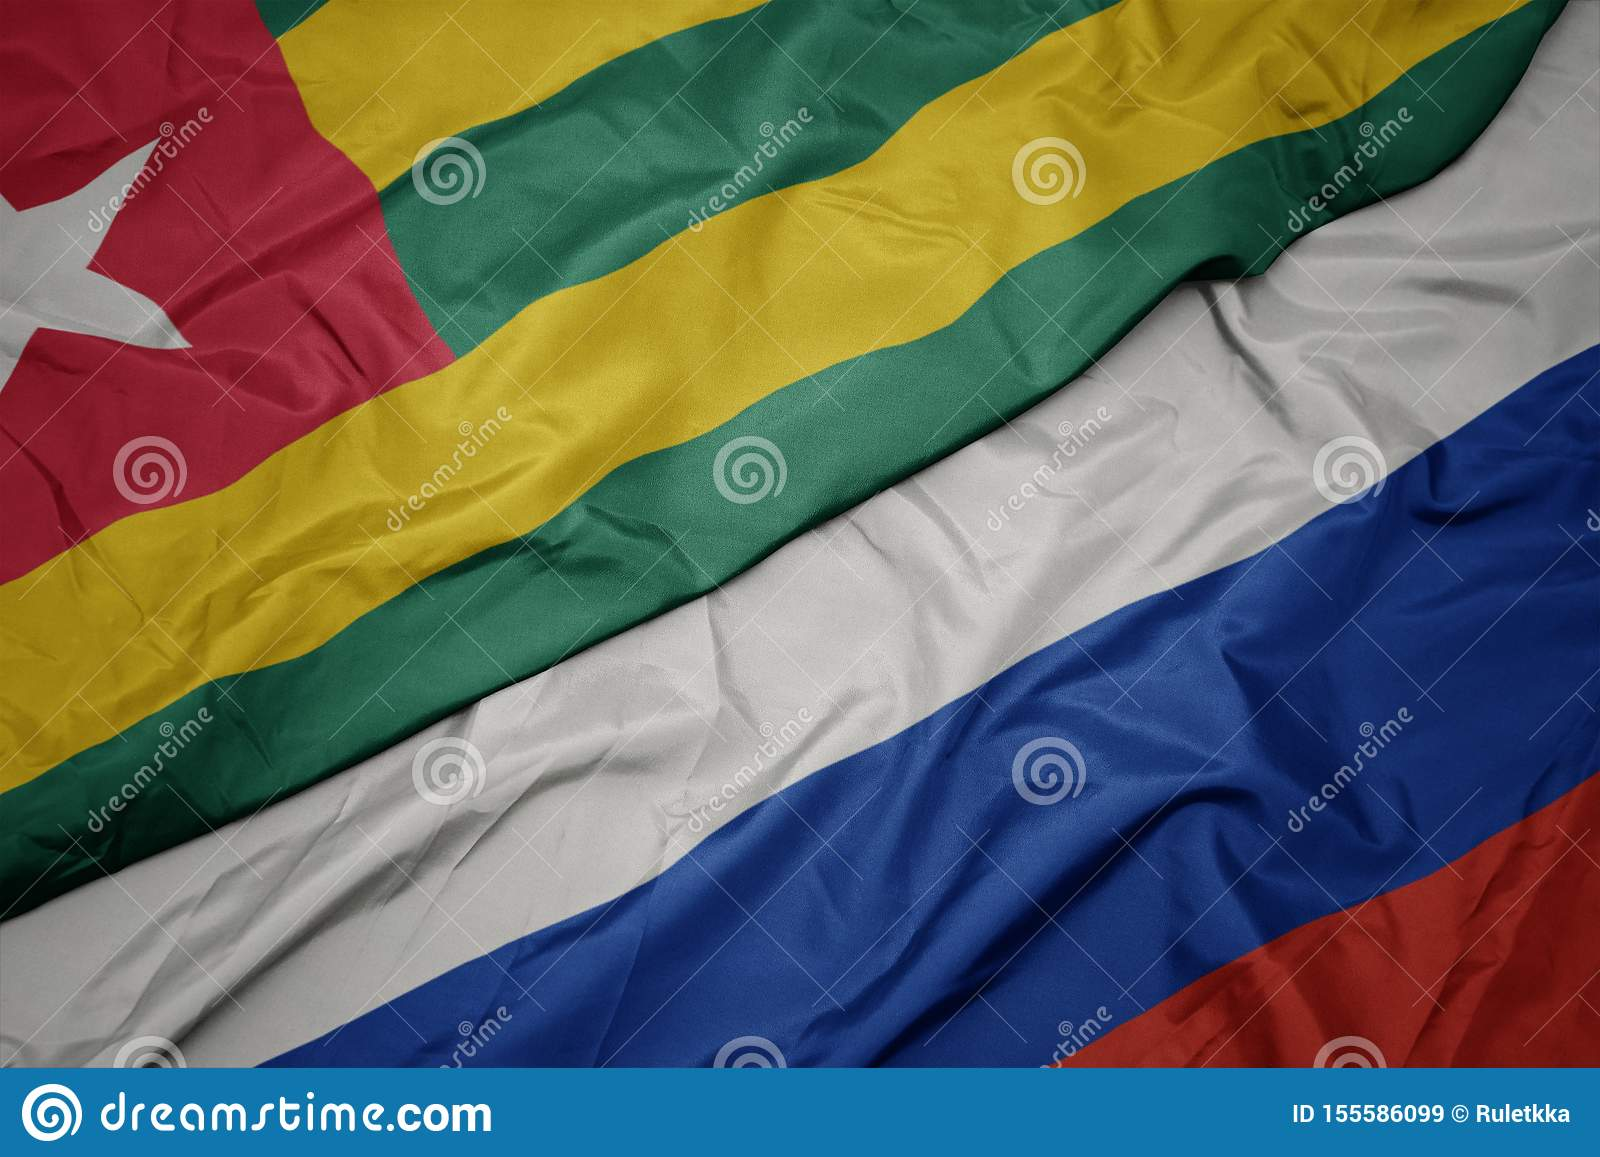 waving colorful flag of russia and national flag of togo